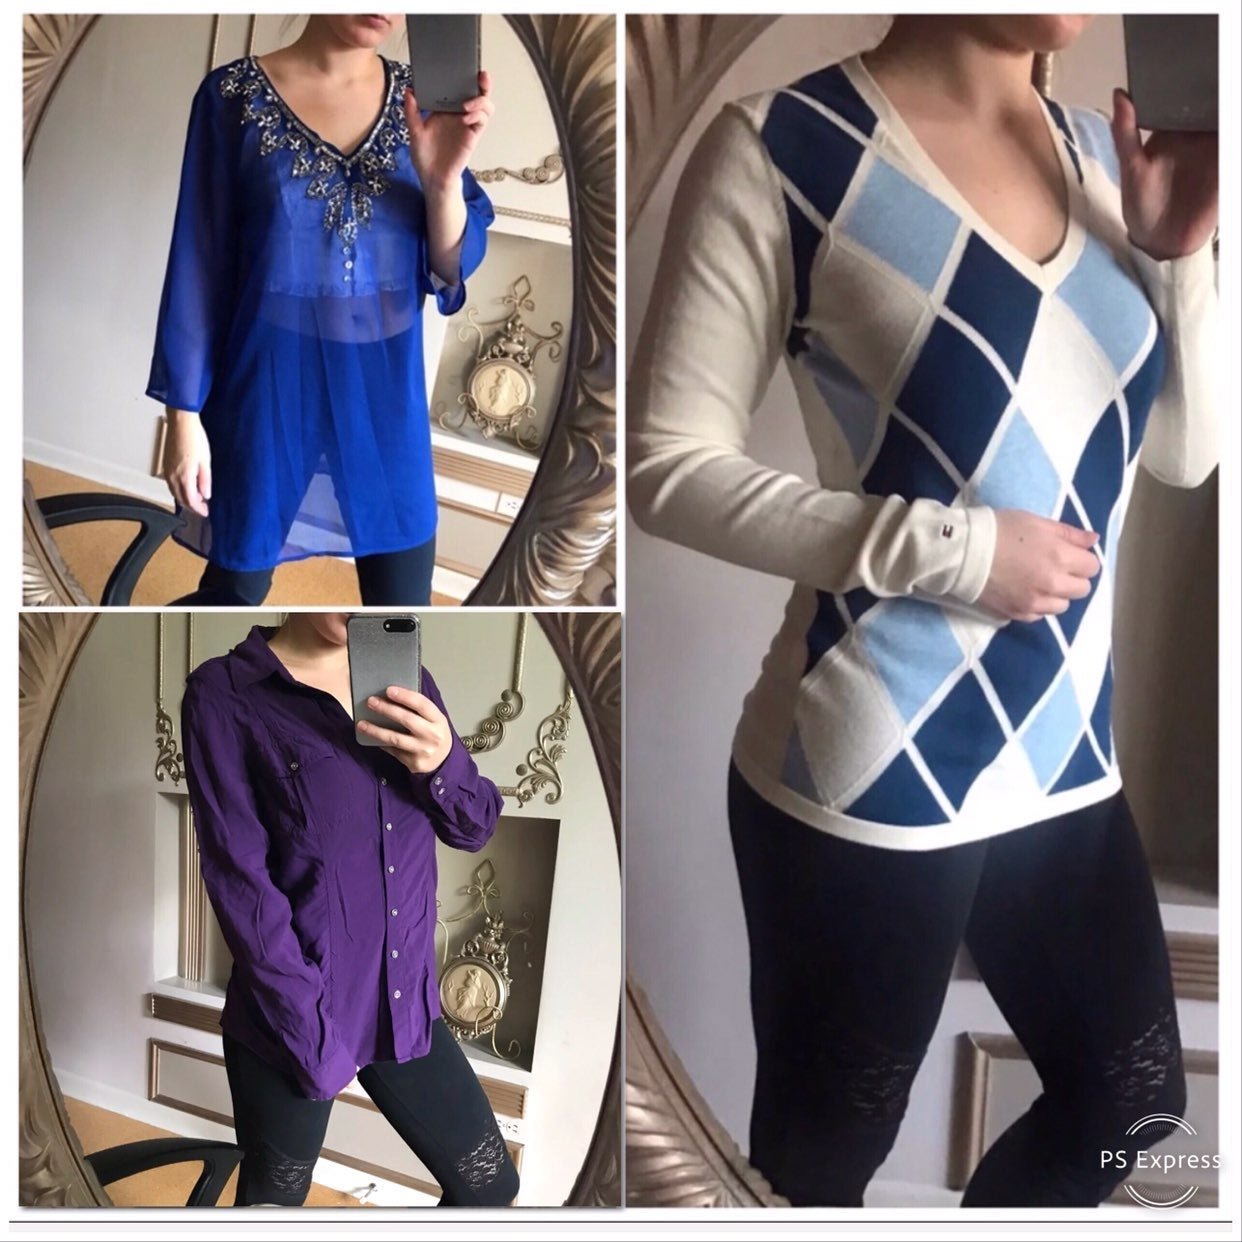 3 Tops tommy Hilfiger, NY&Co & Express S